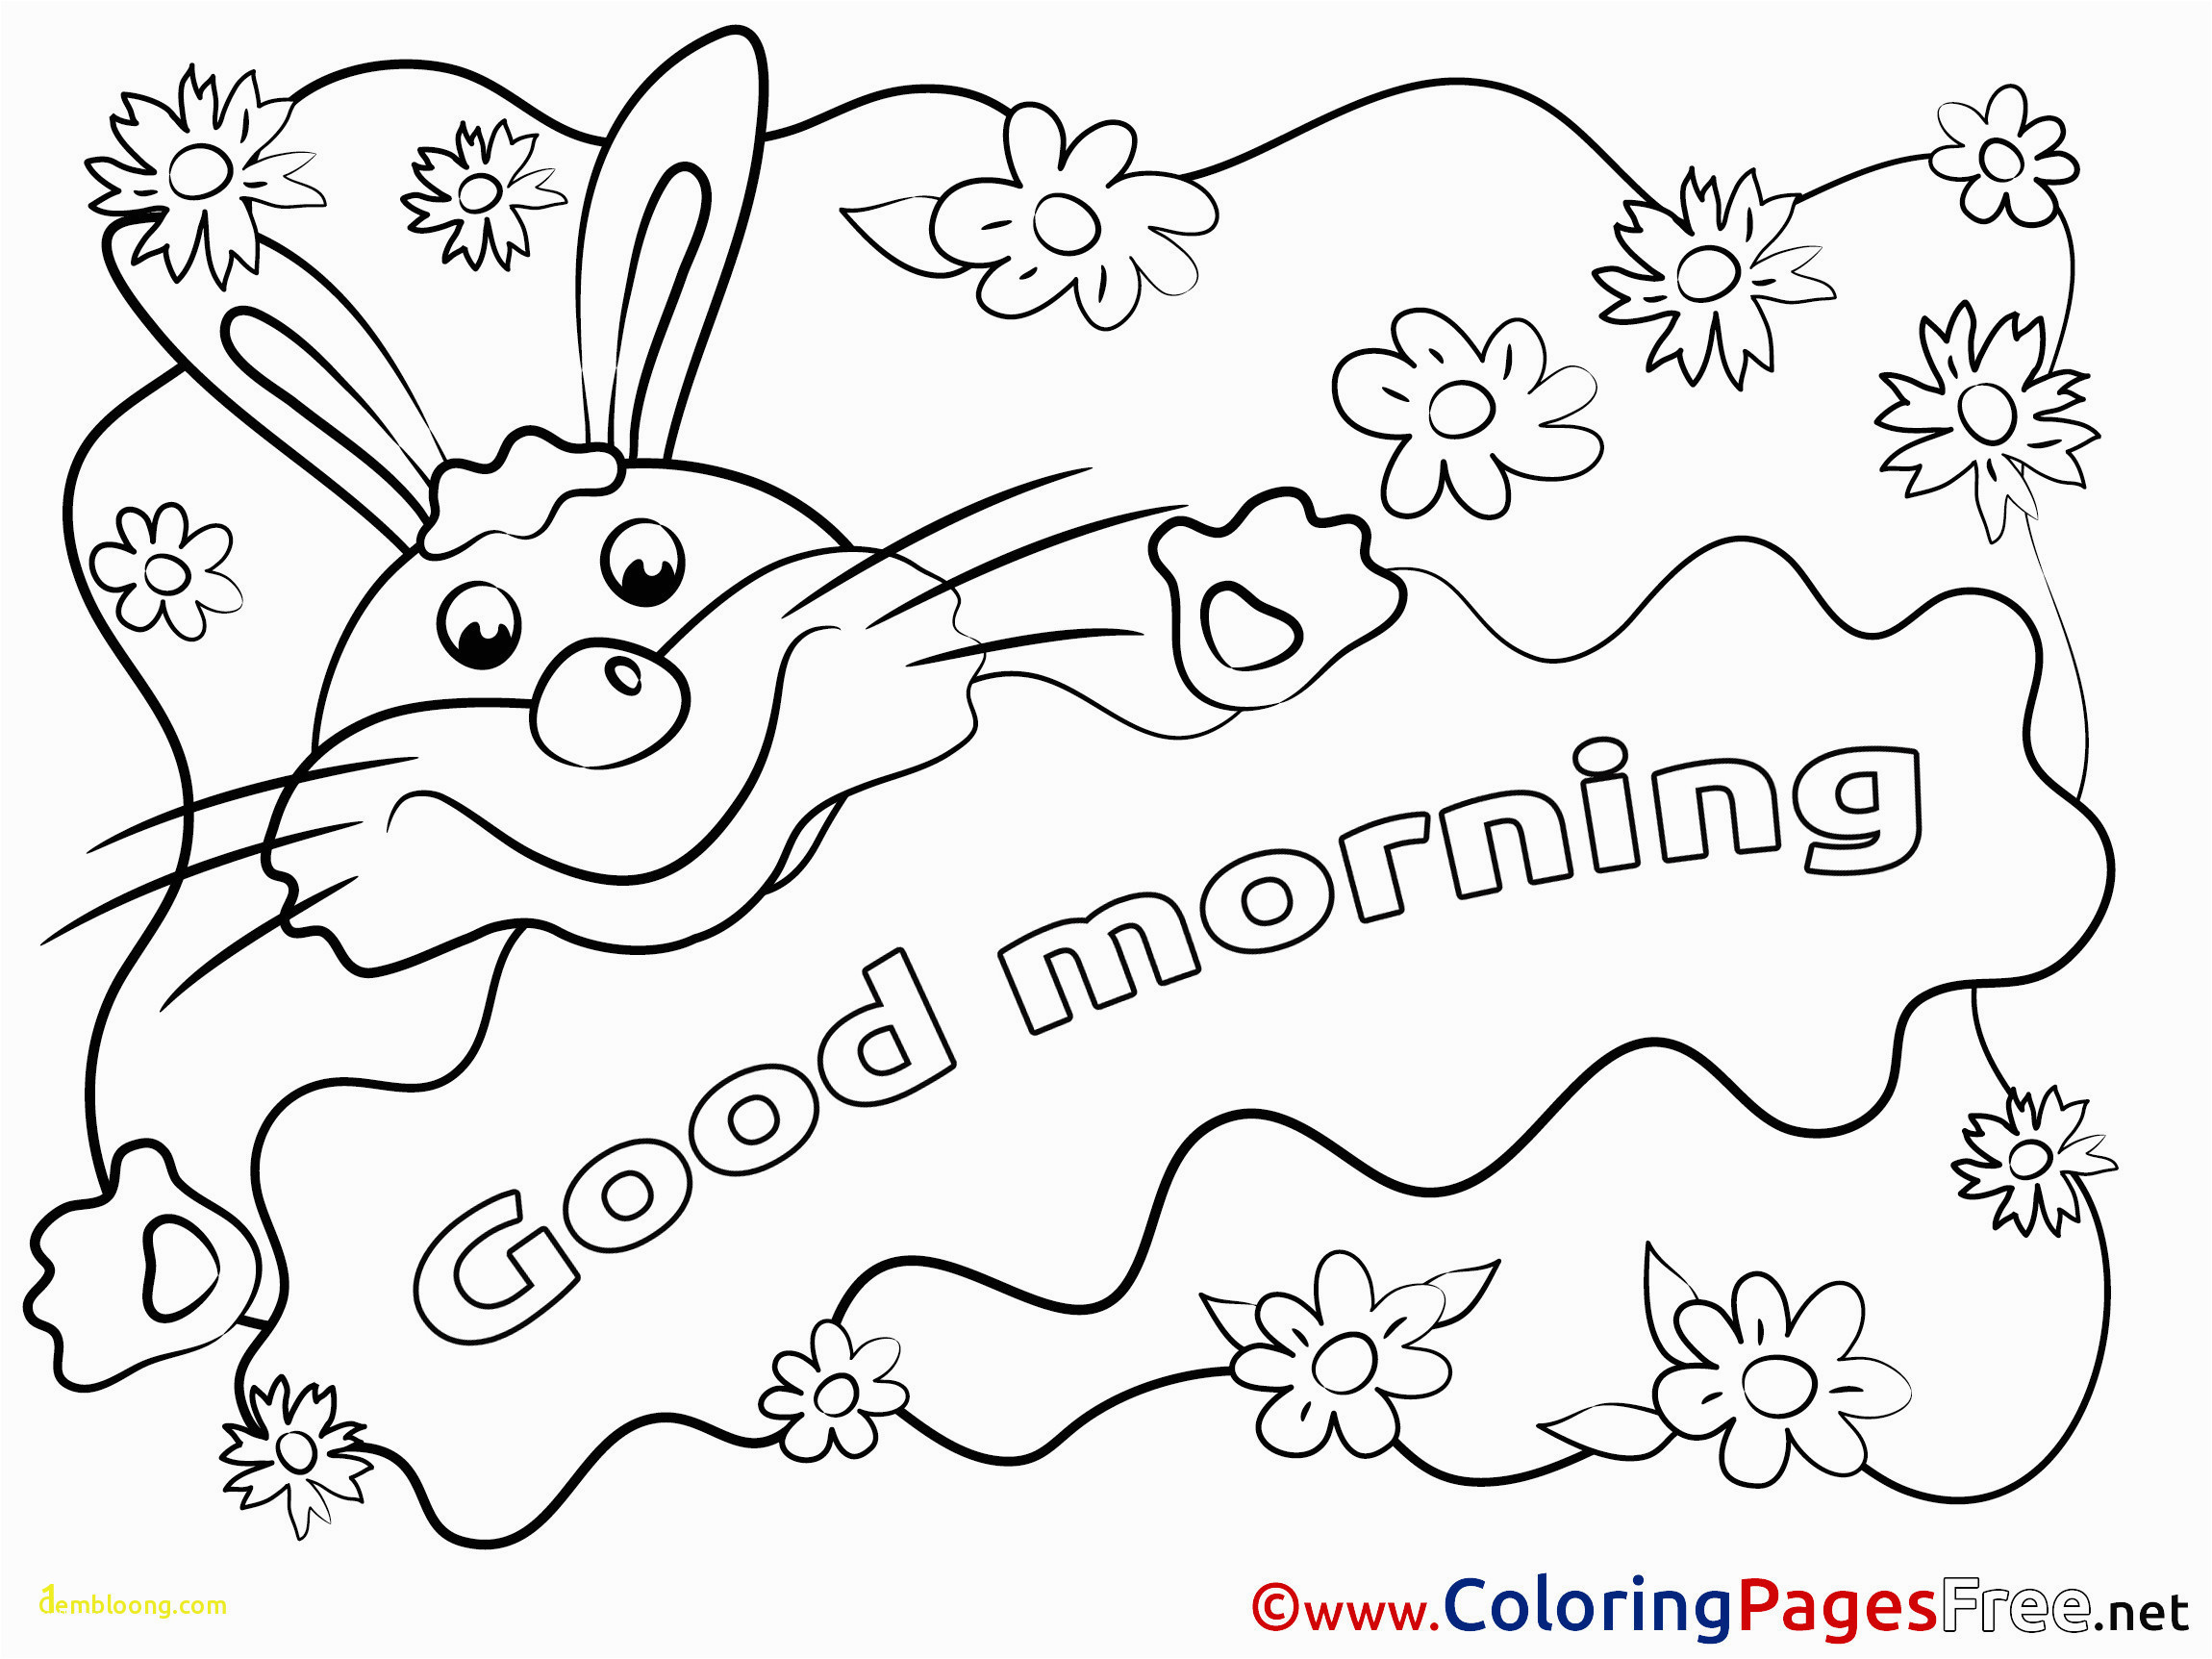 printable affirmation coloring pages best of coloring pages free spring coloring sheets free spring of printable affirmation coloring pages